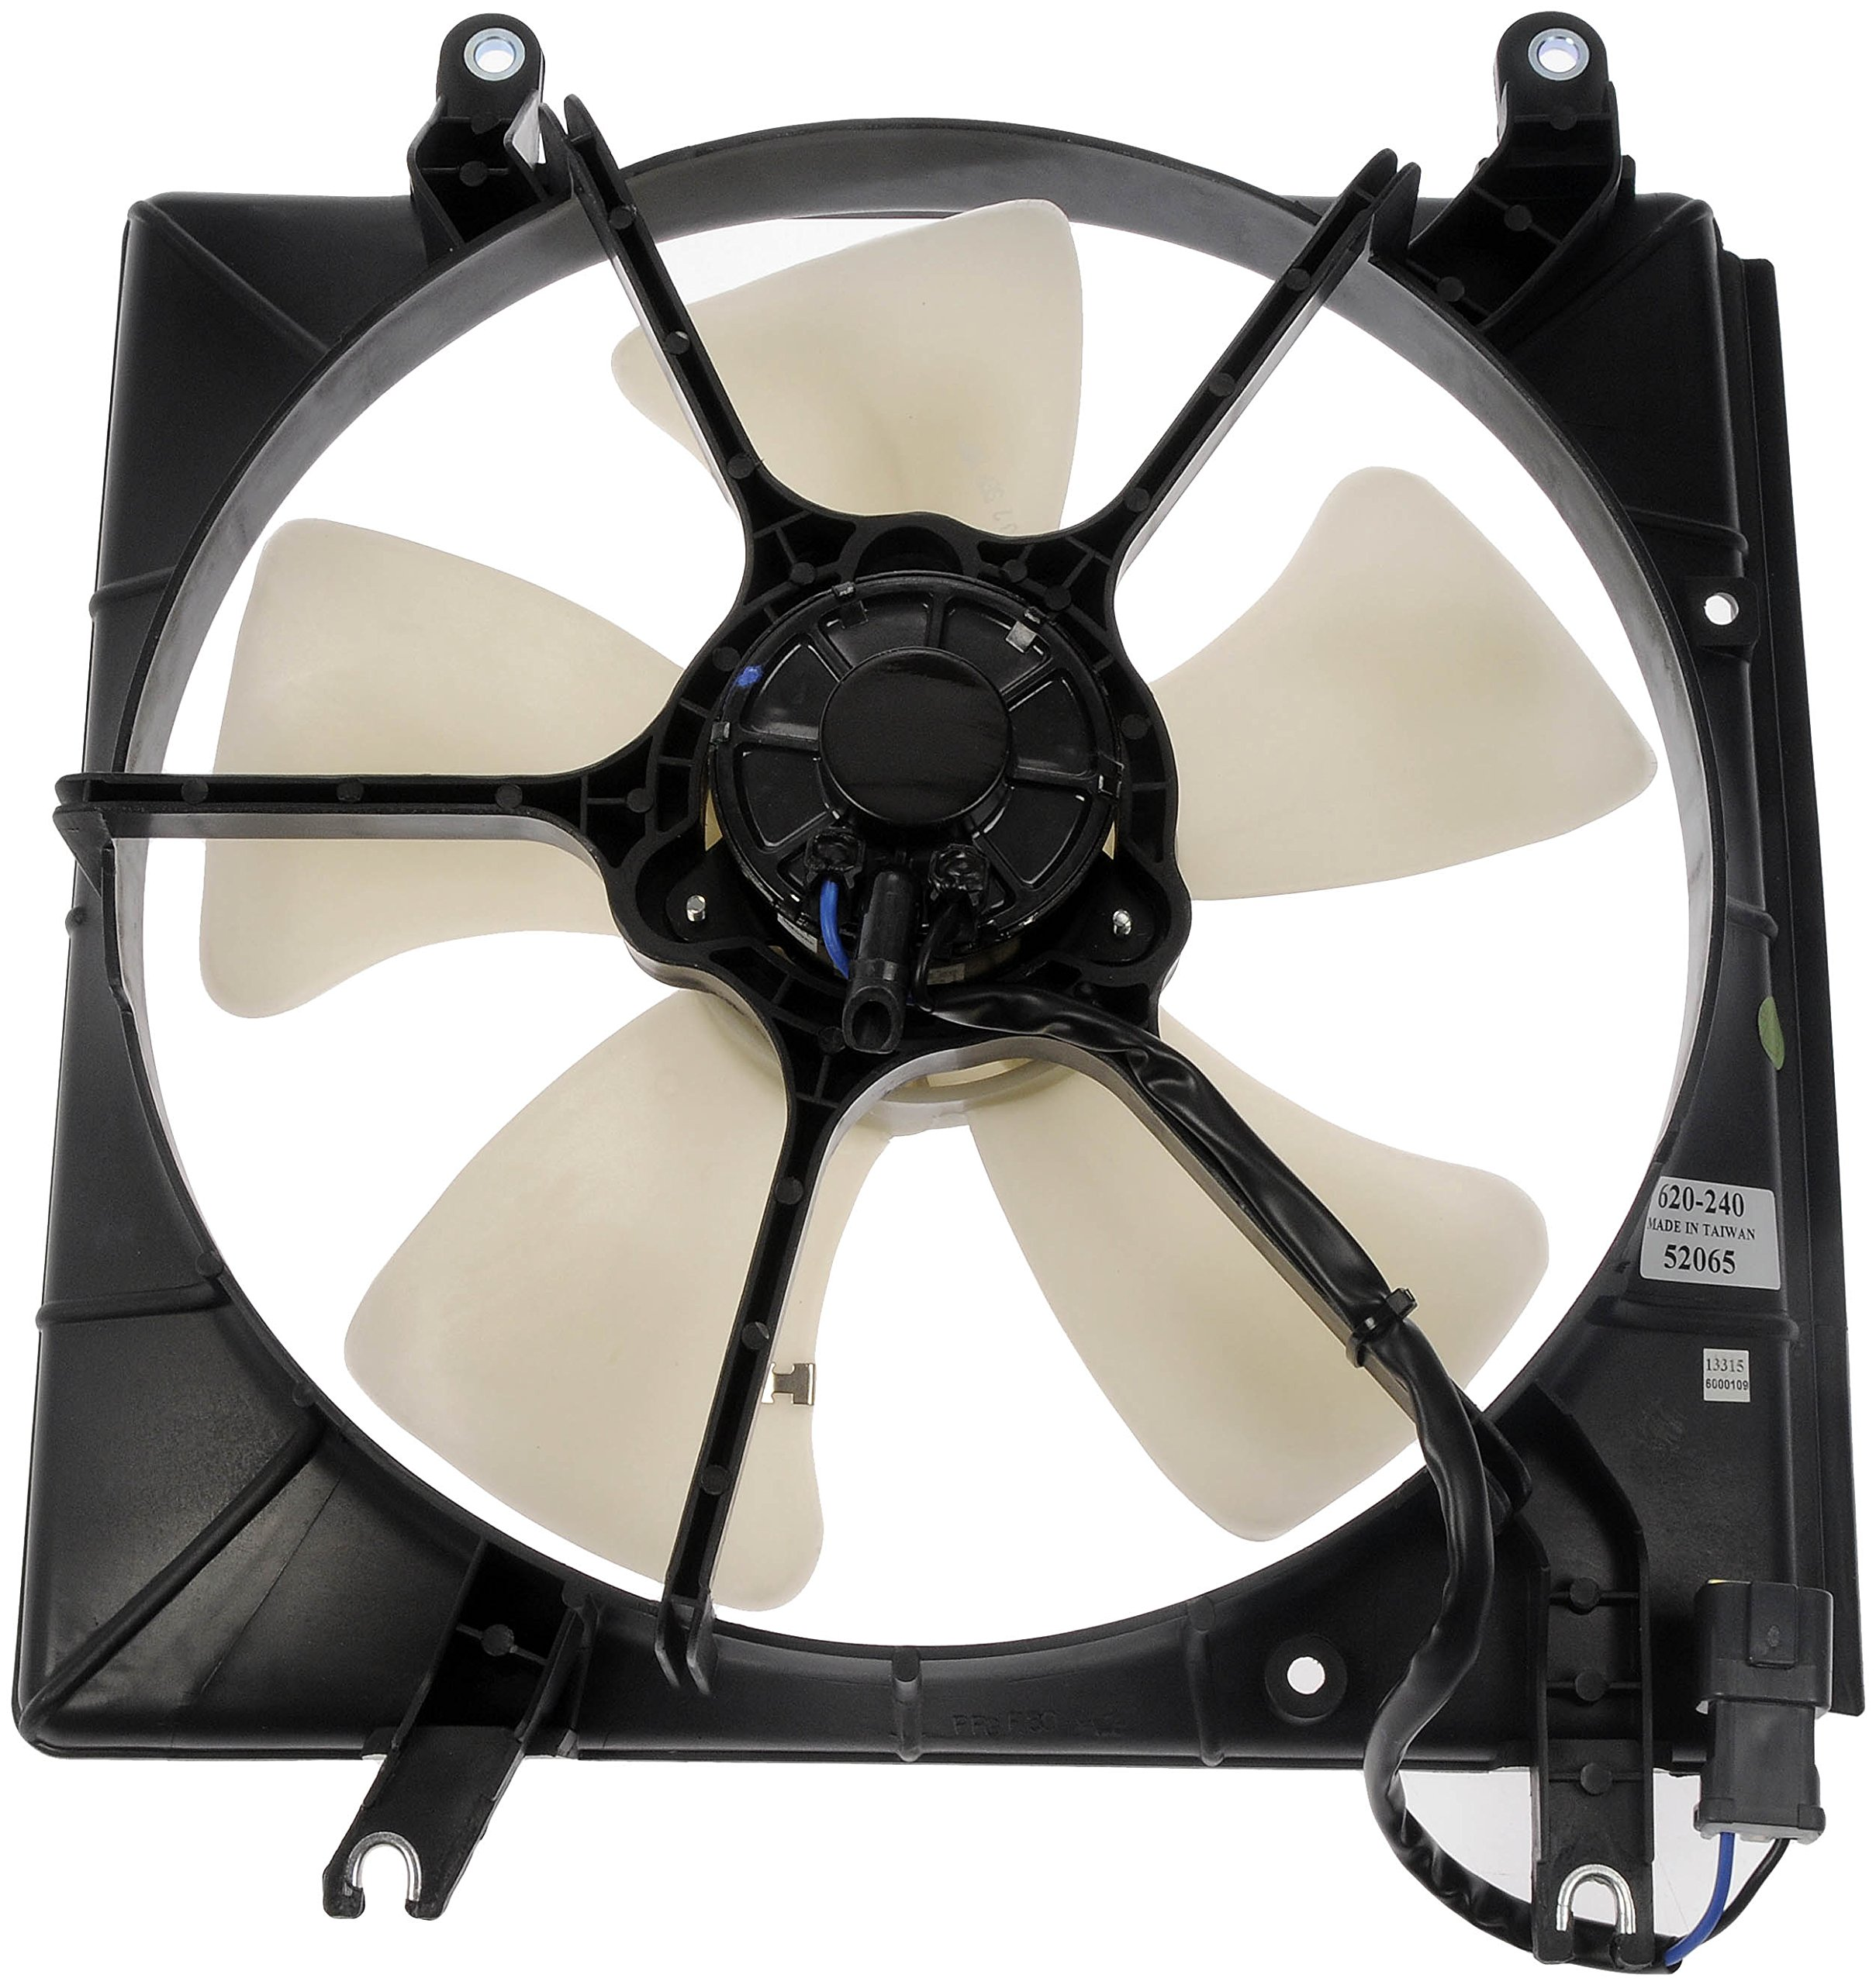 Dorman 620-240 Radiator Fan by Dorman